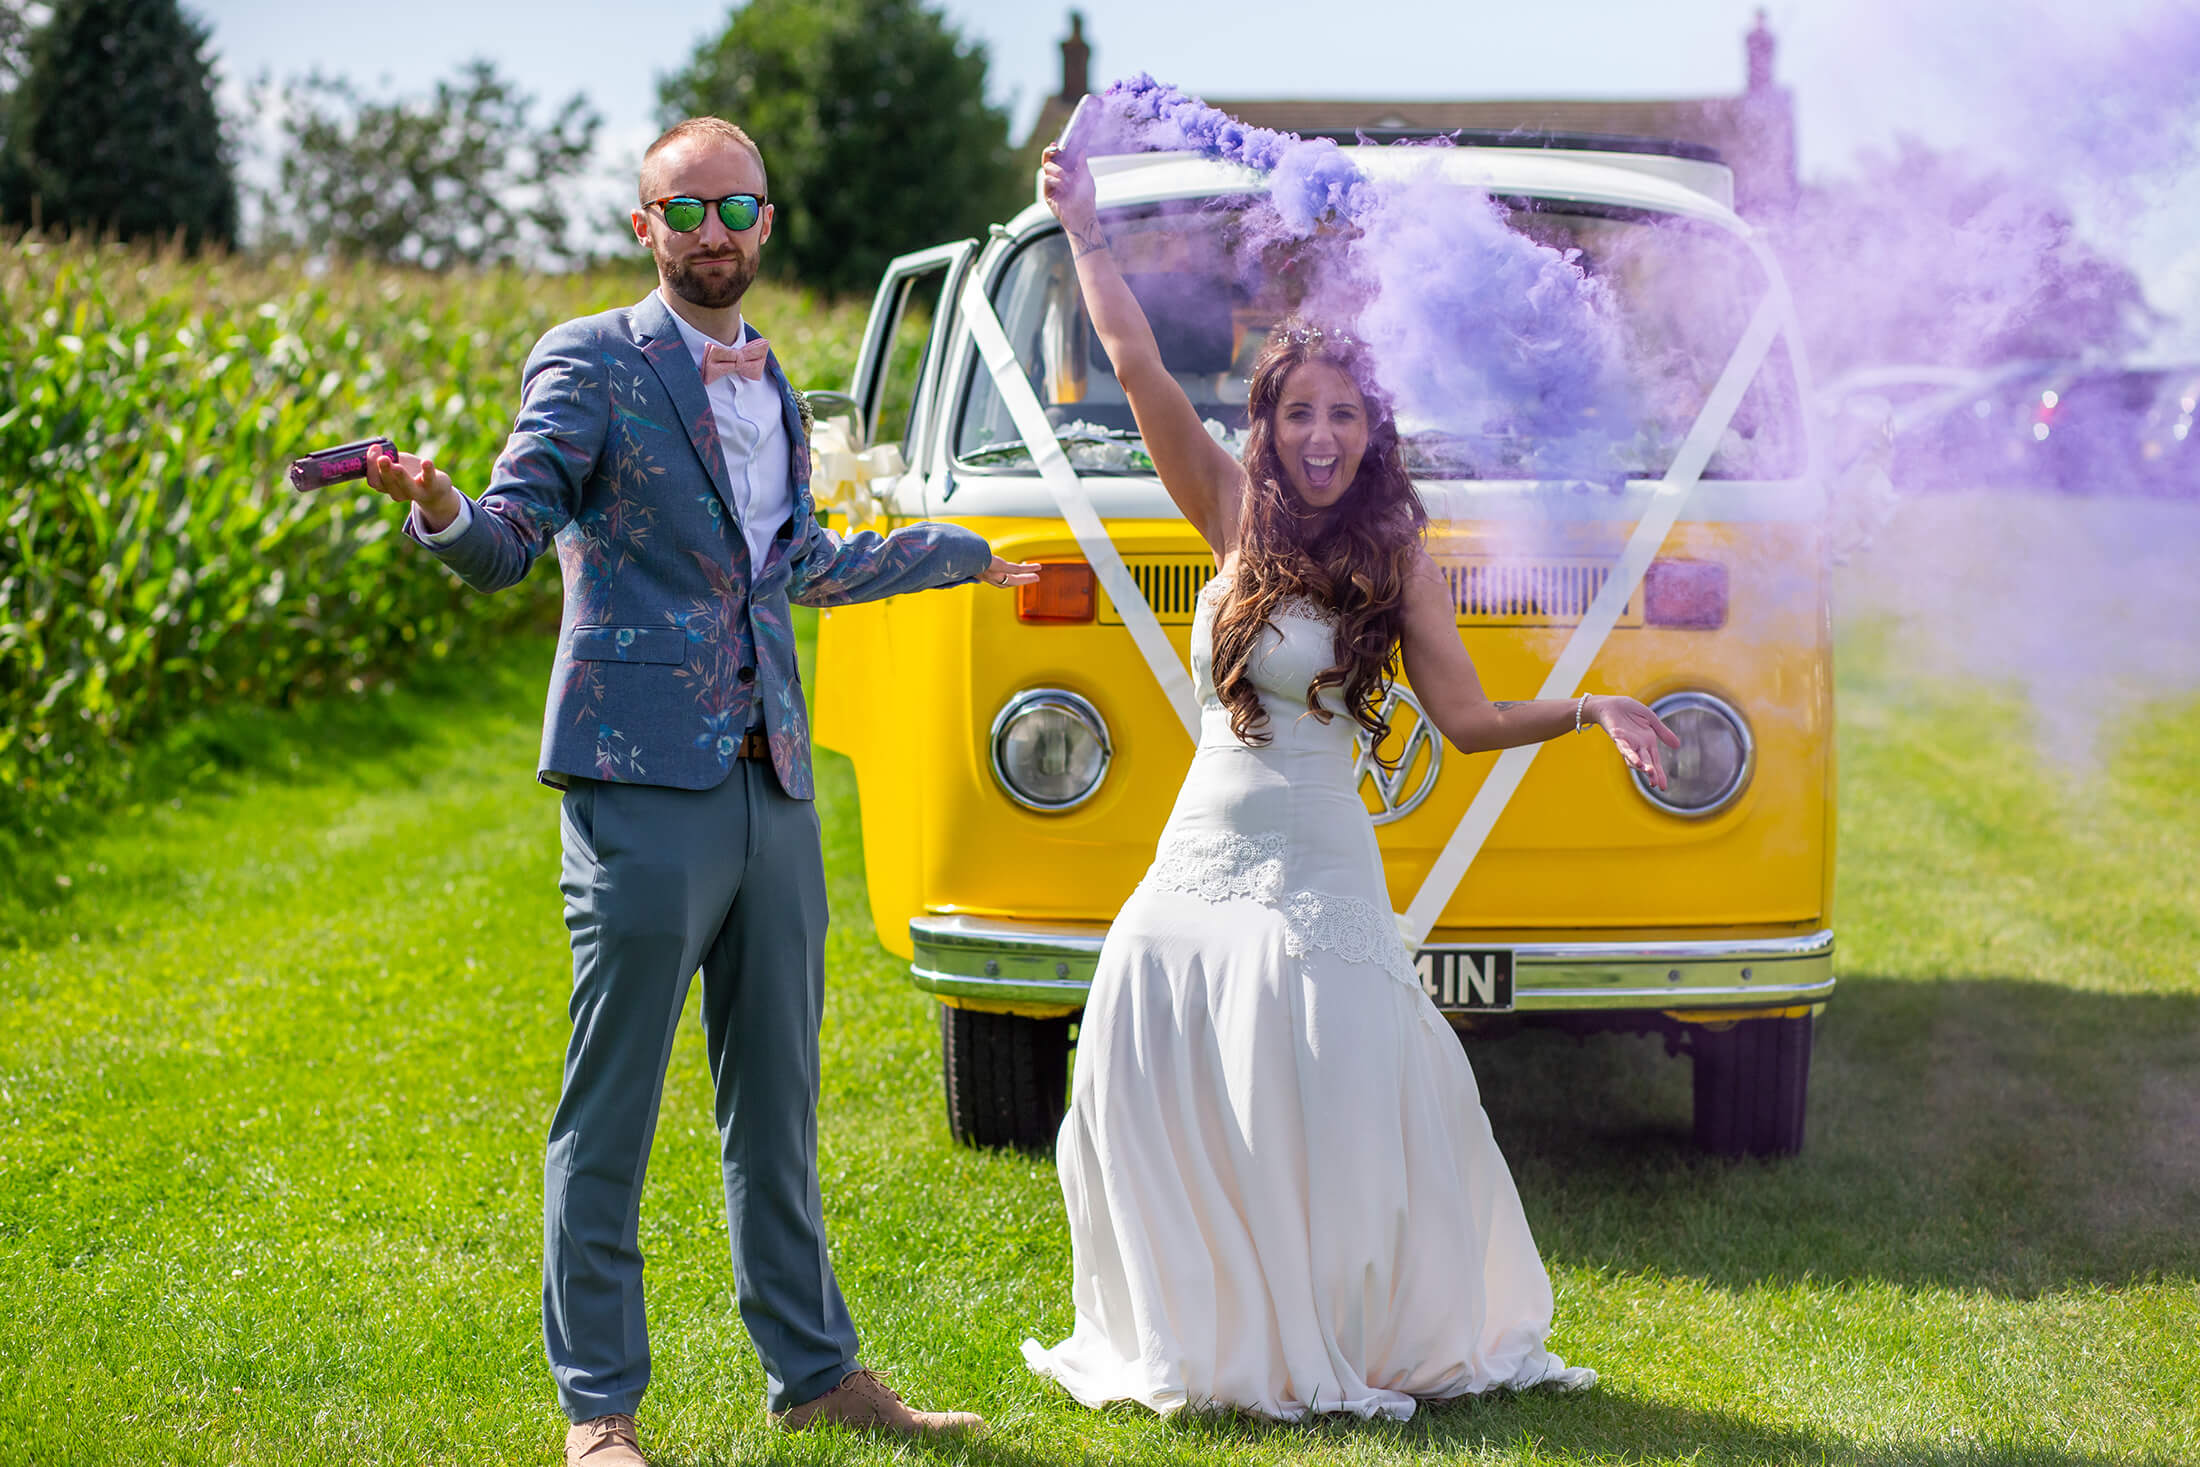 The bride and groom play with smoke grenades